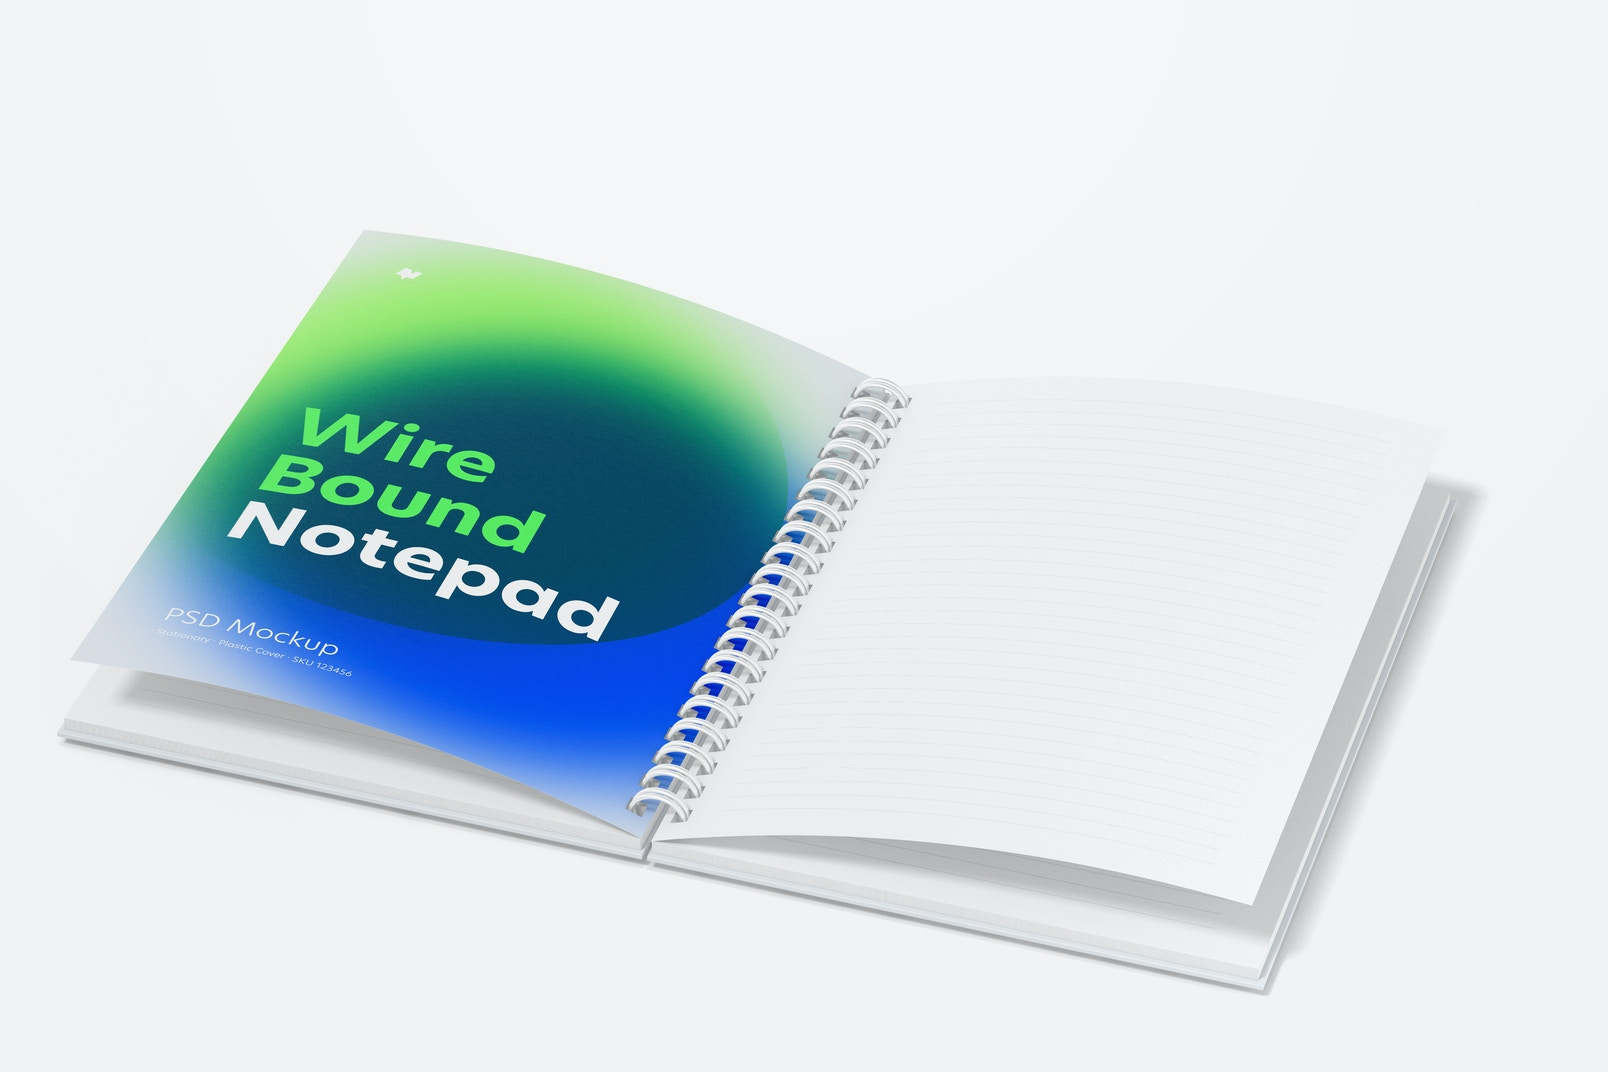 Plastic Cover Wire Bound Notepad Mockup, Opened